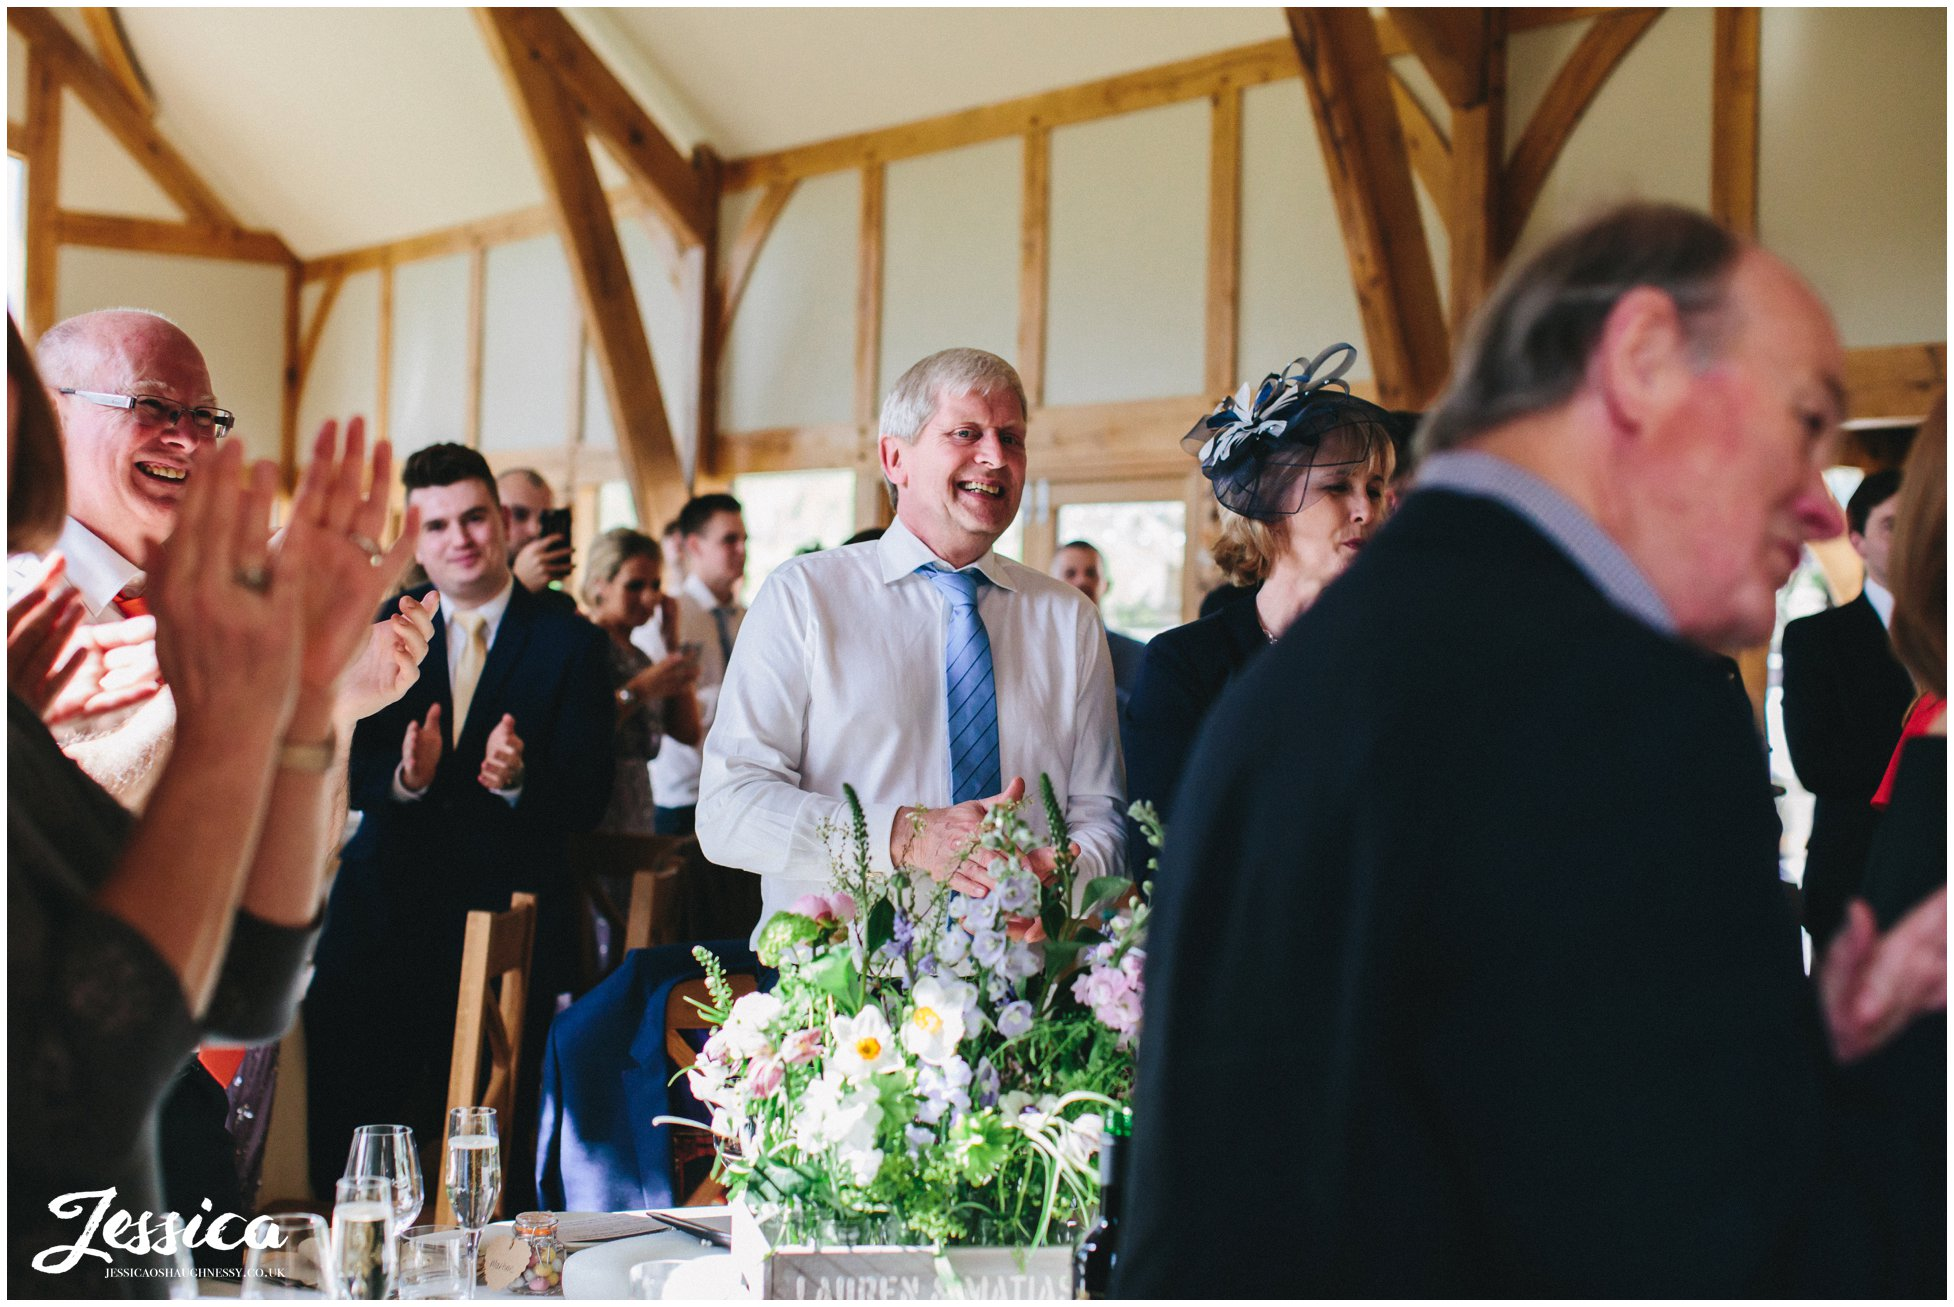 guests clapping as bride & groom enter the room